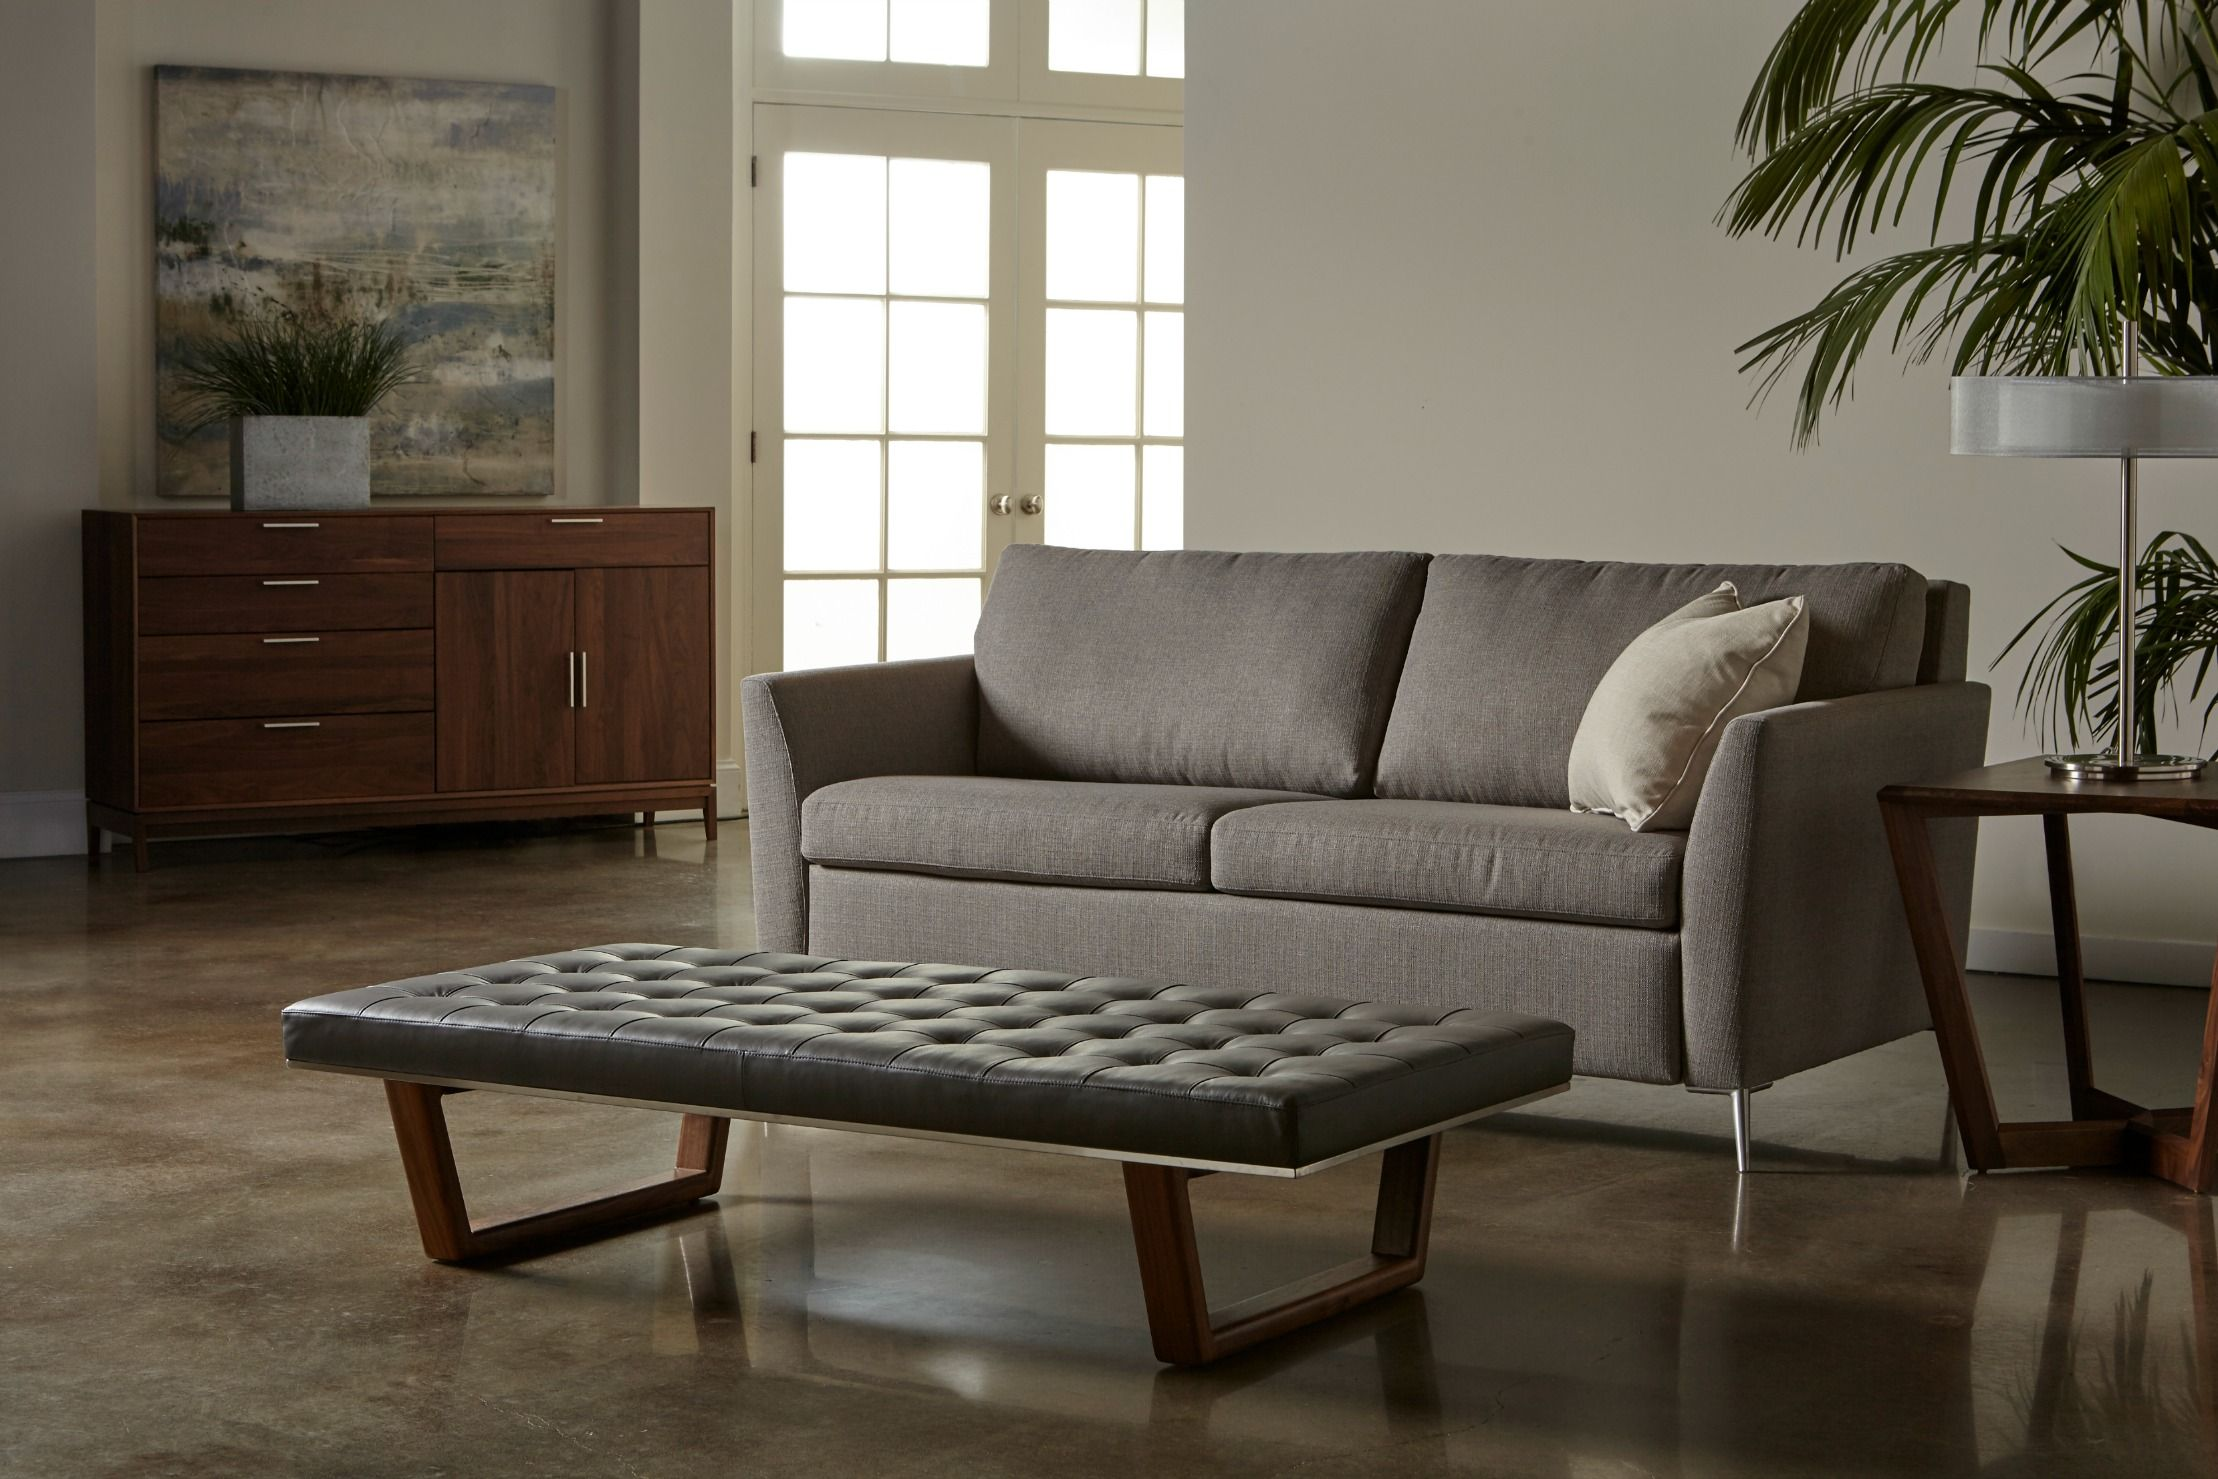 noah comfort sleeper sofa by american leather is available in a range of leathers u0026